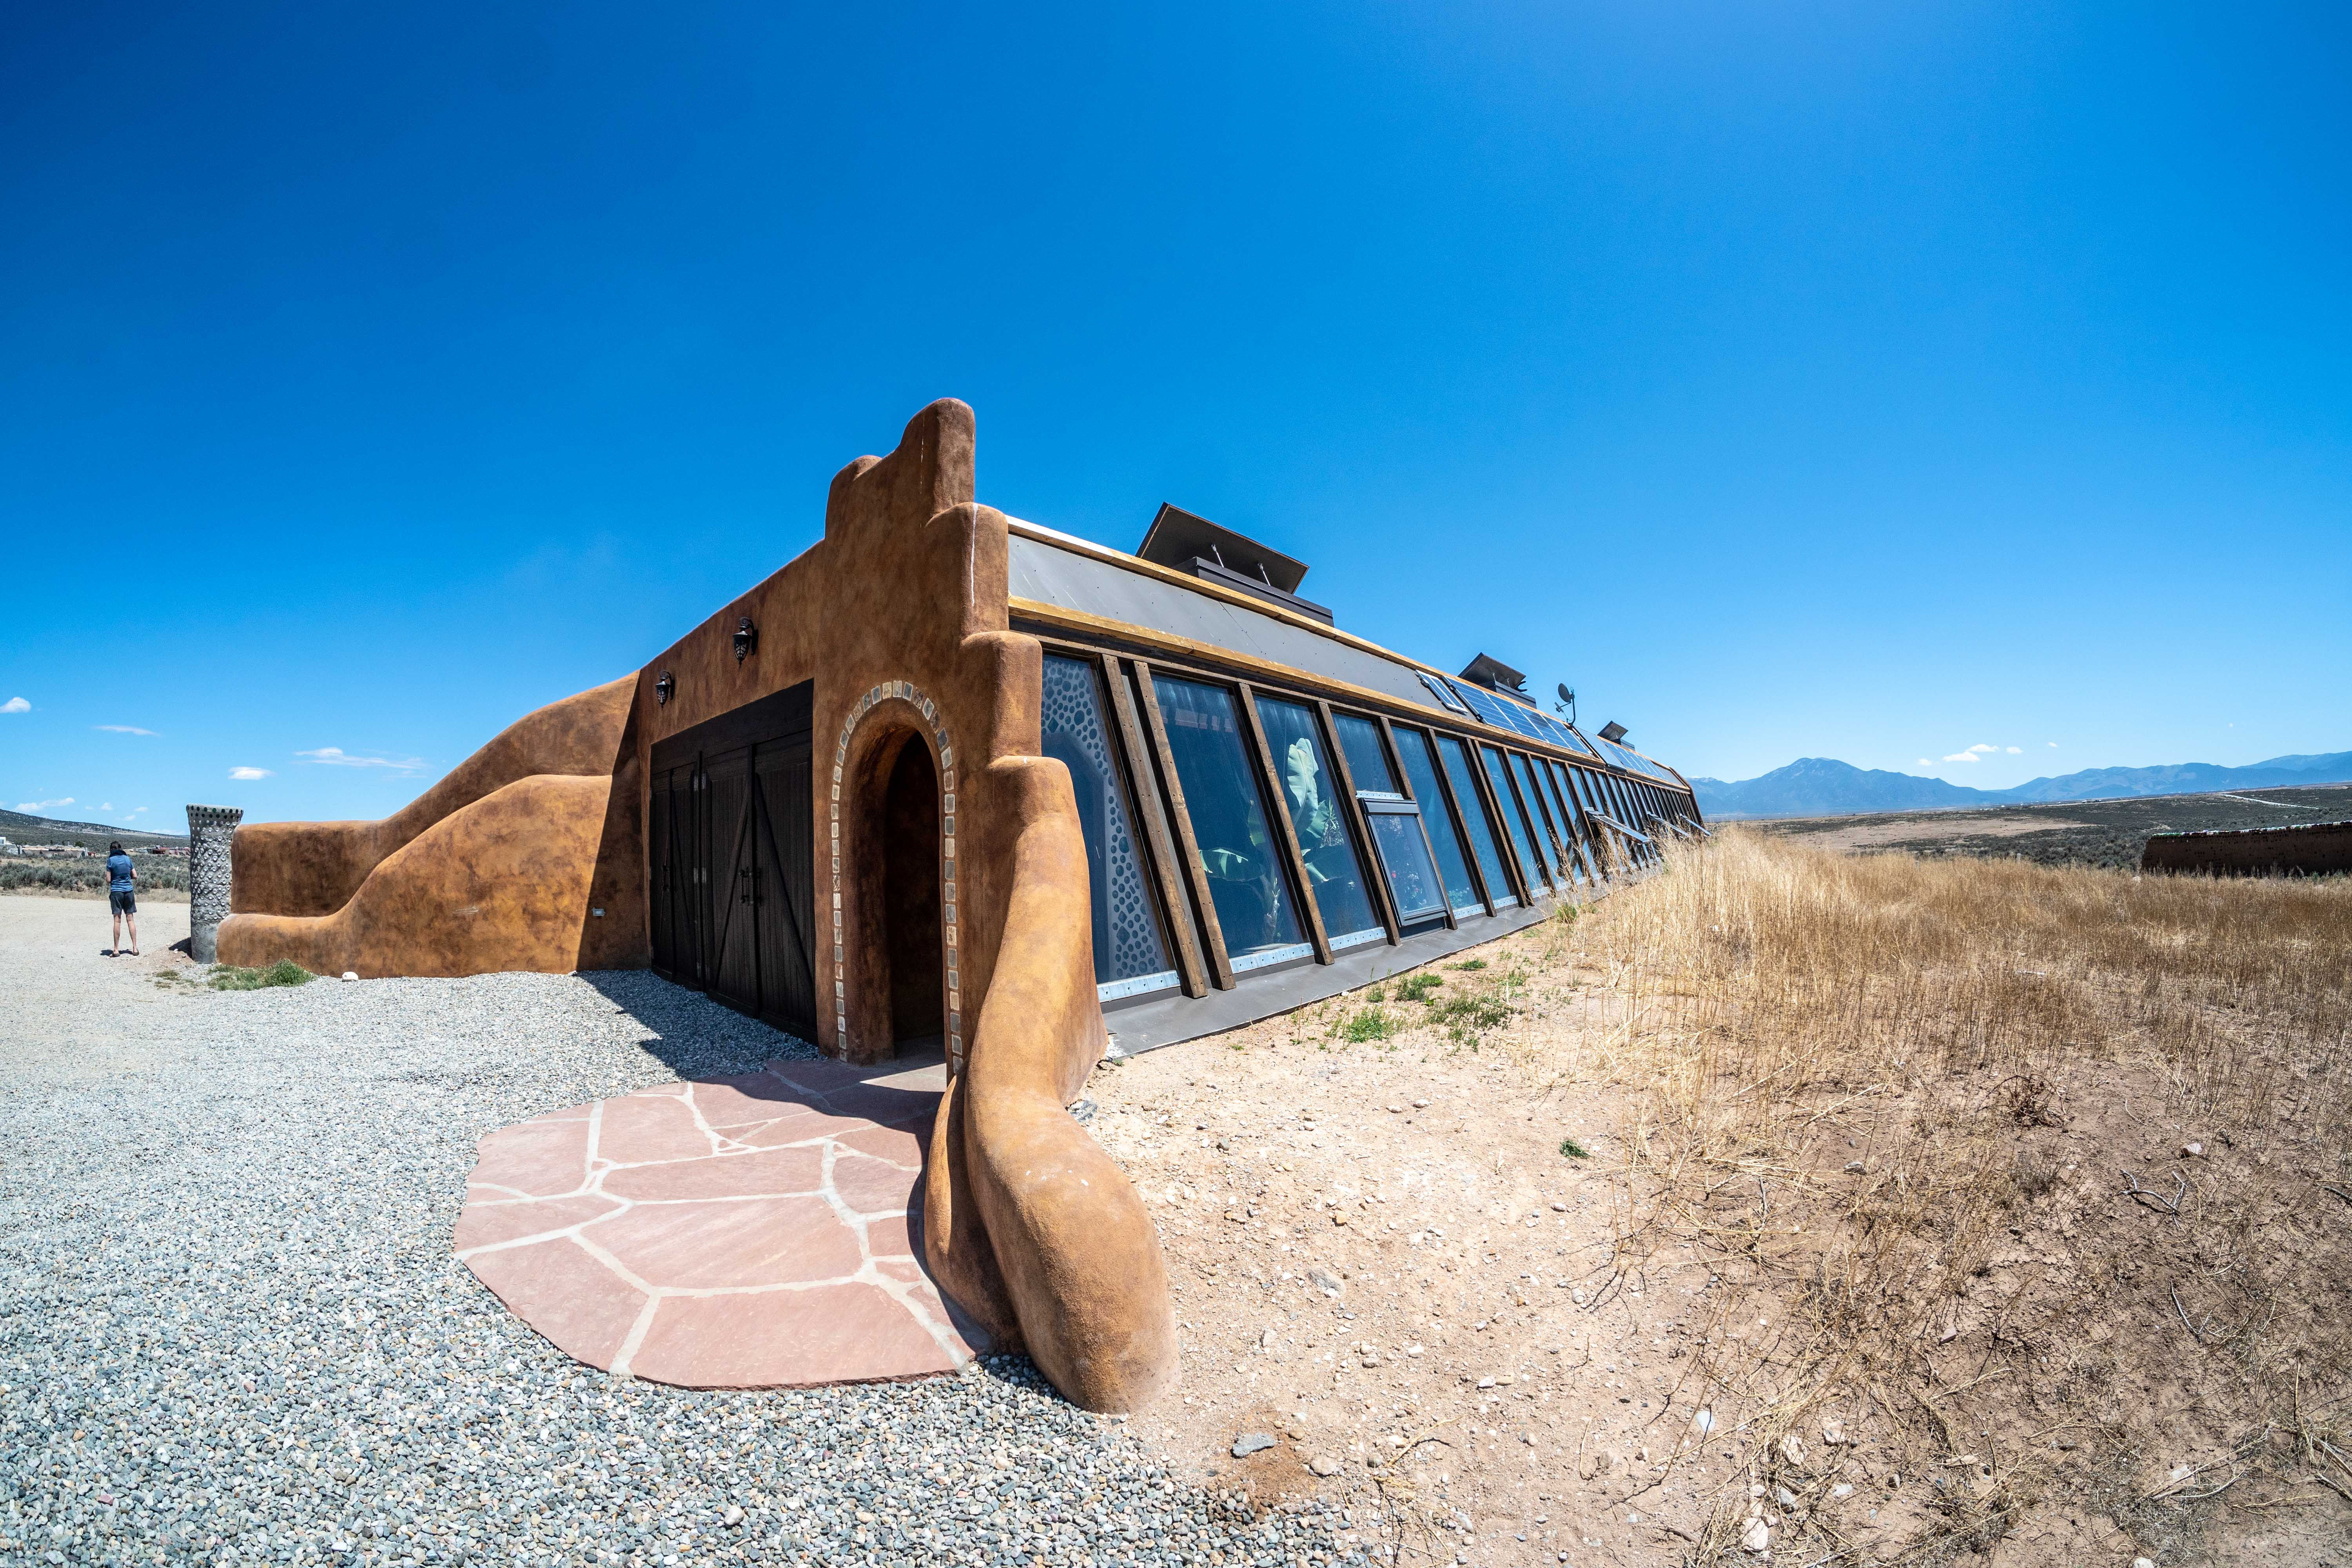 How do I find the time to help a friend build an Earthship?